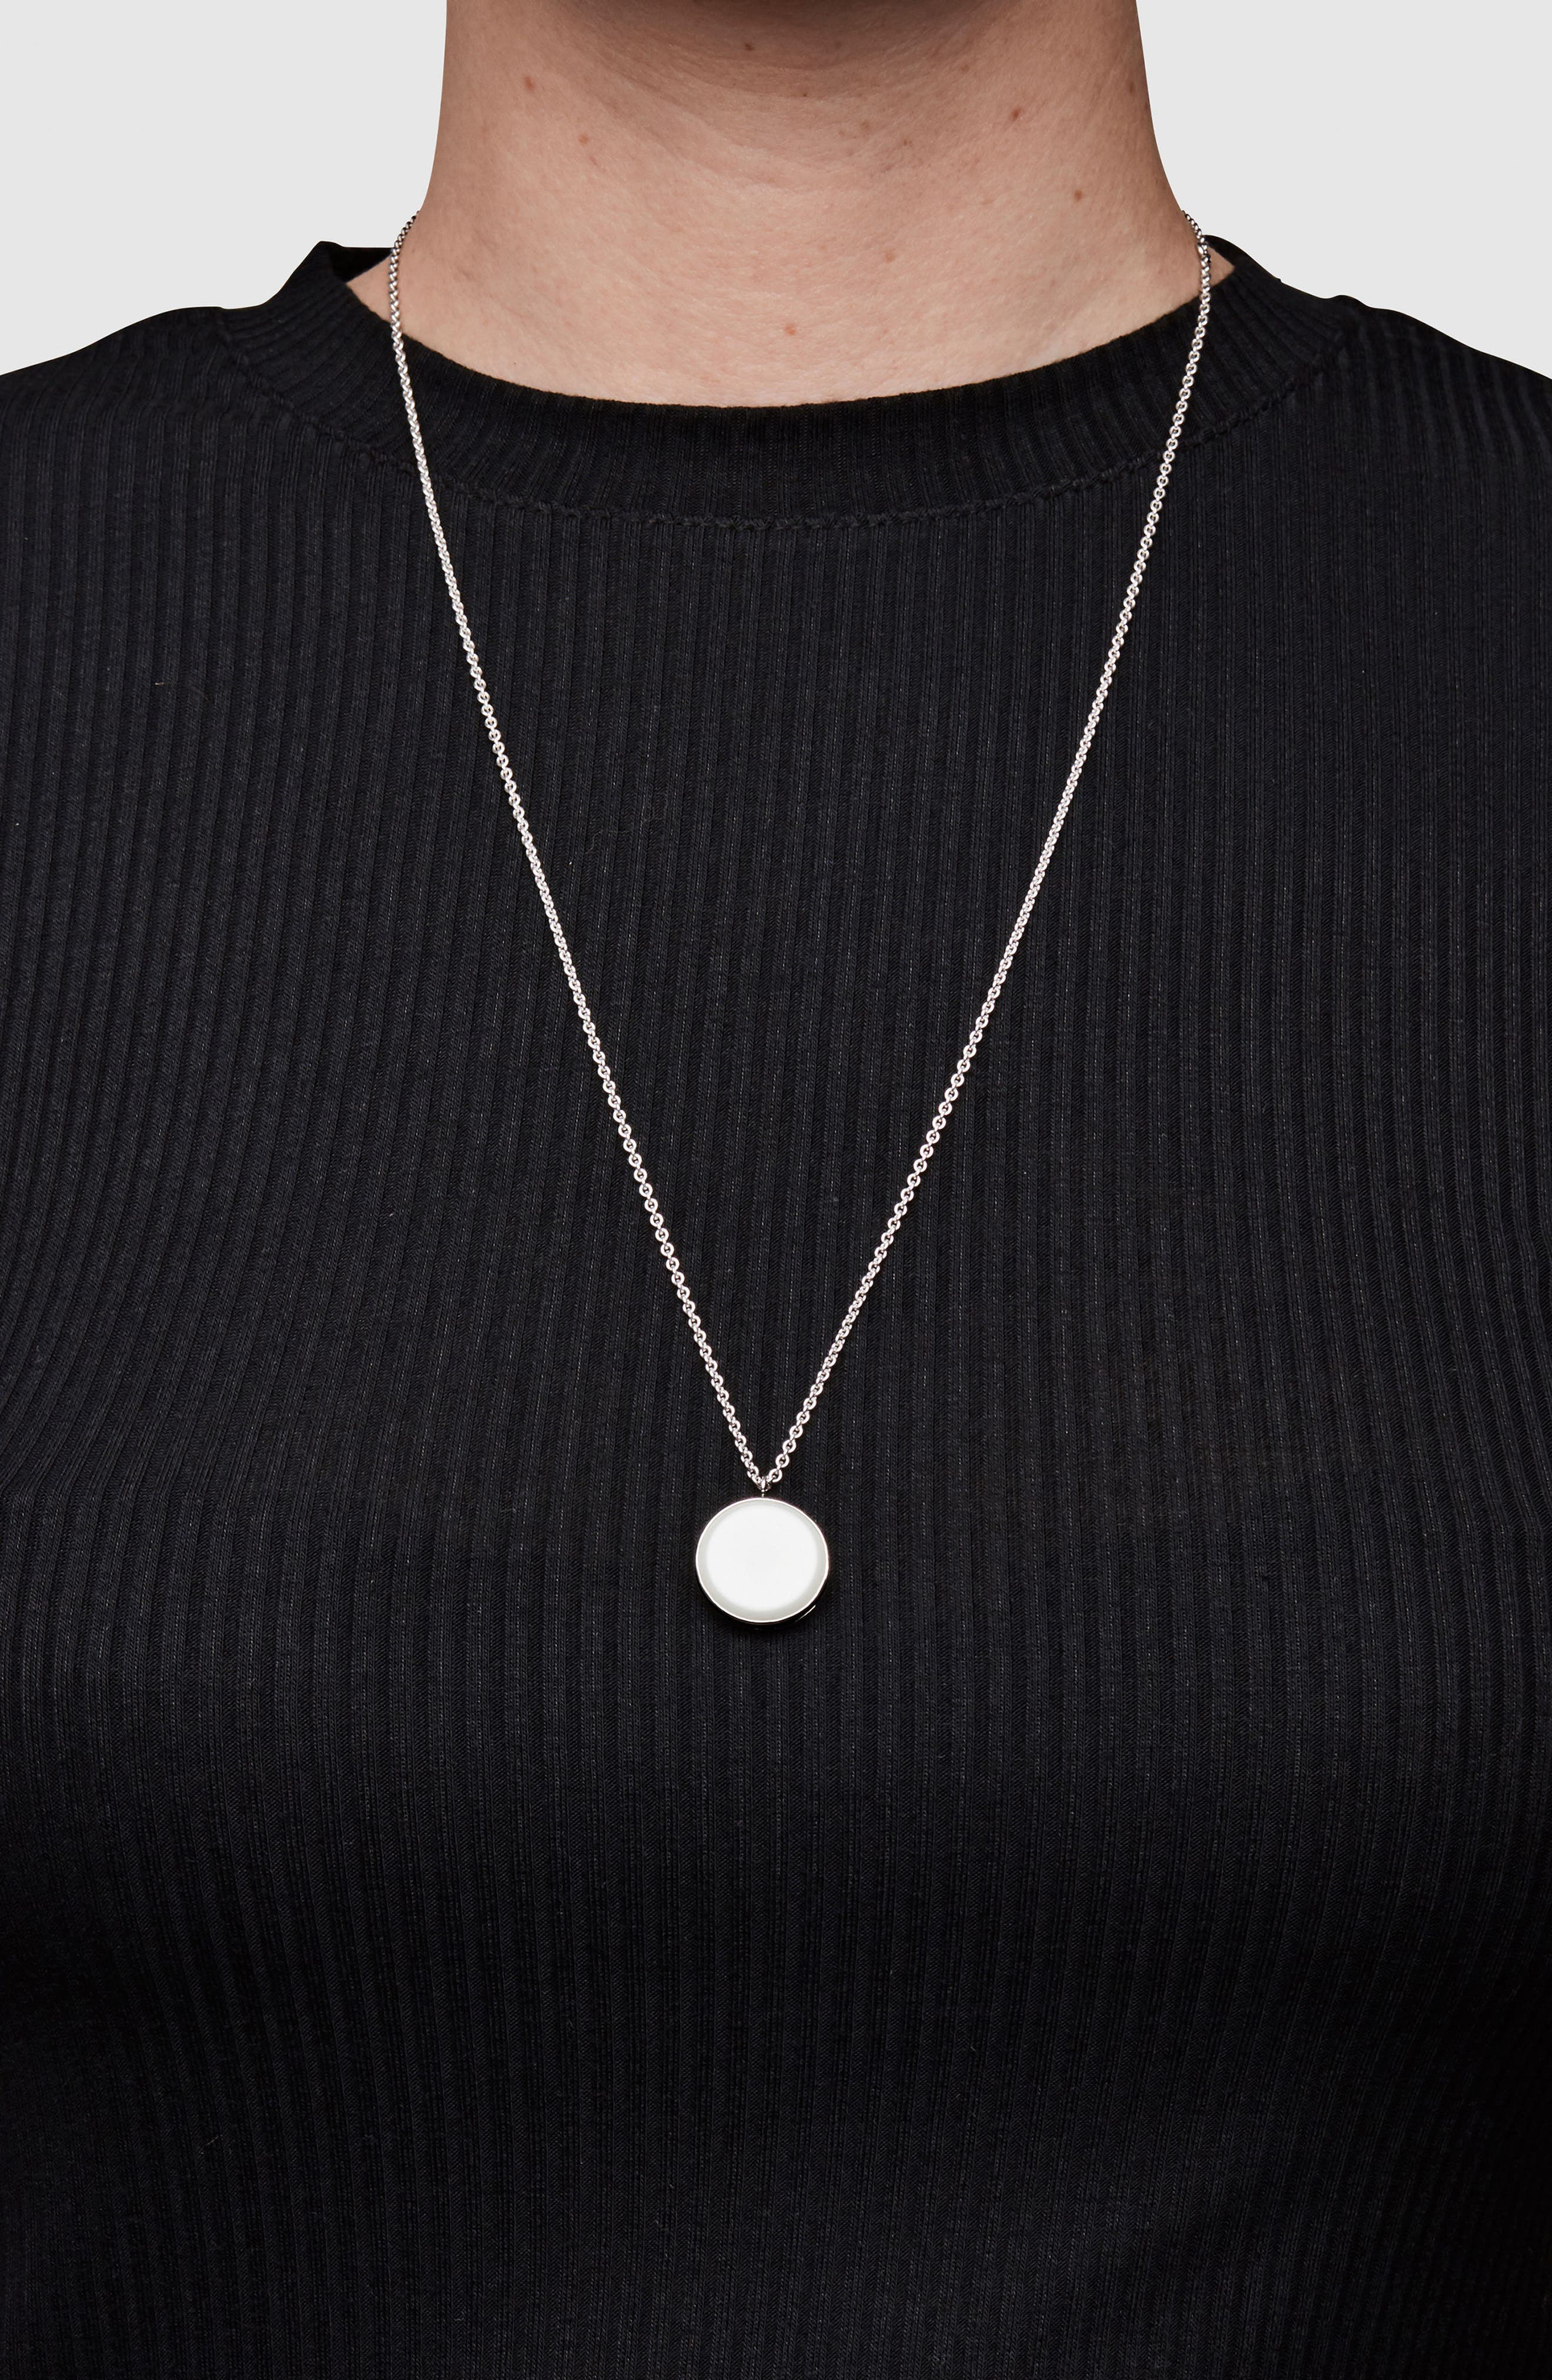 White Agate Medallion Necklace,                             Alternate thumbnail 2, color,                             925 Sterling Silver